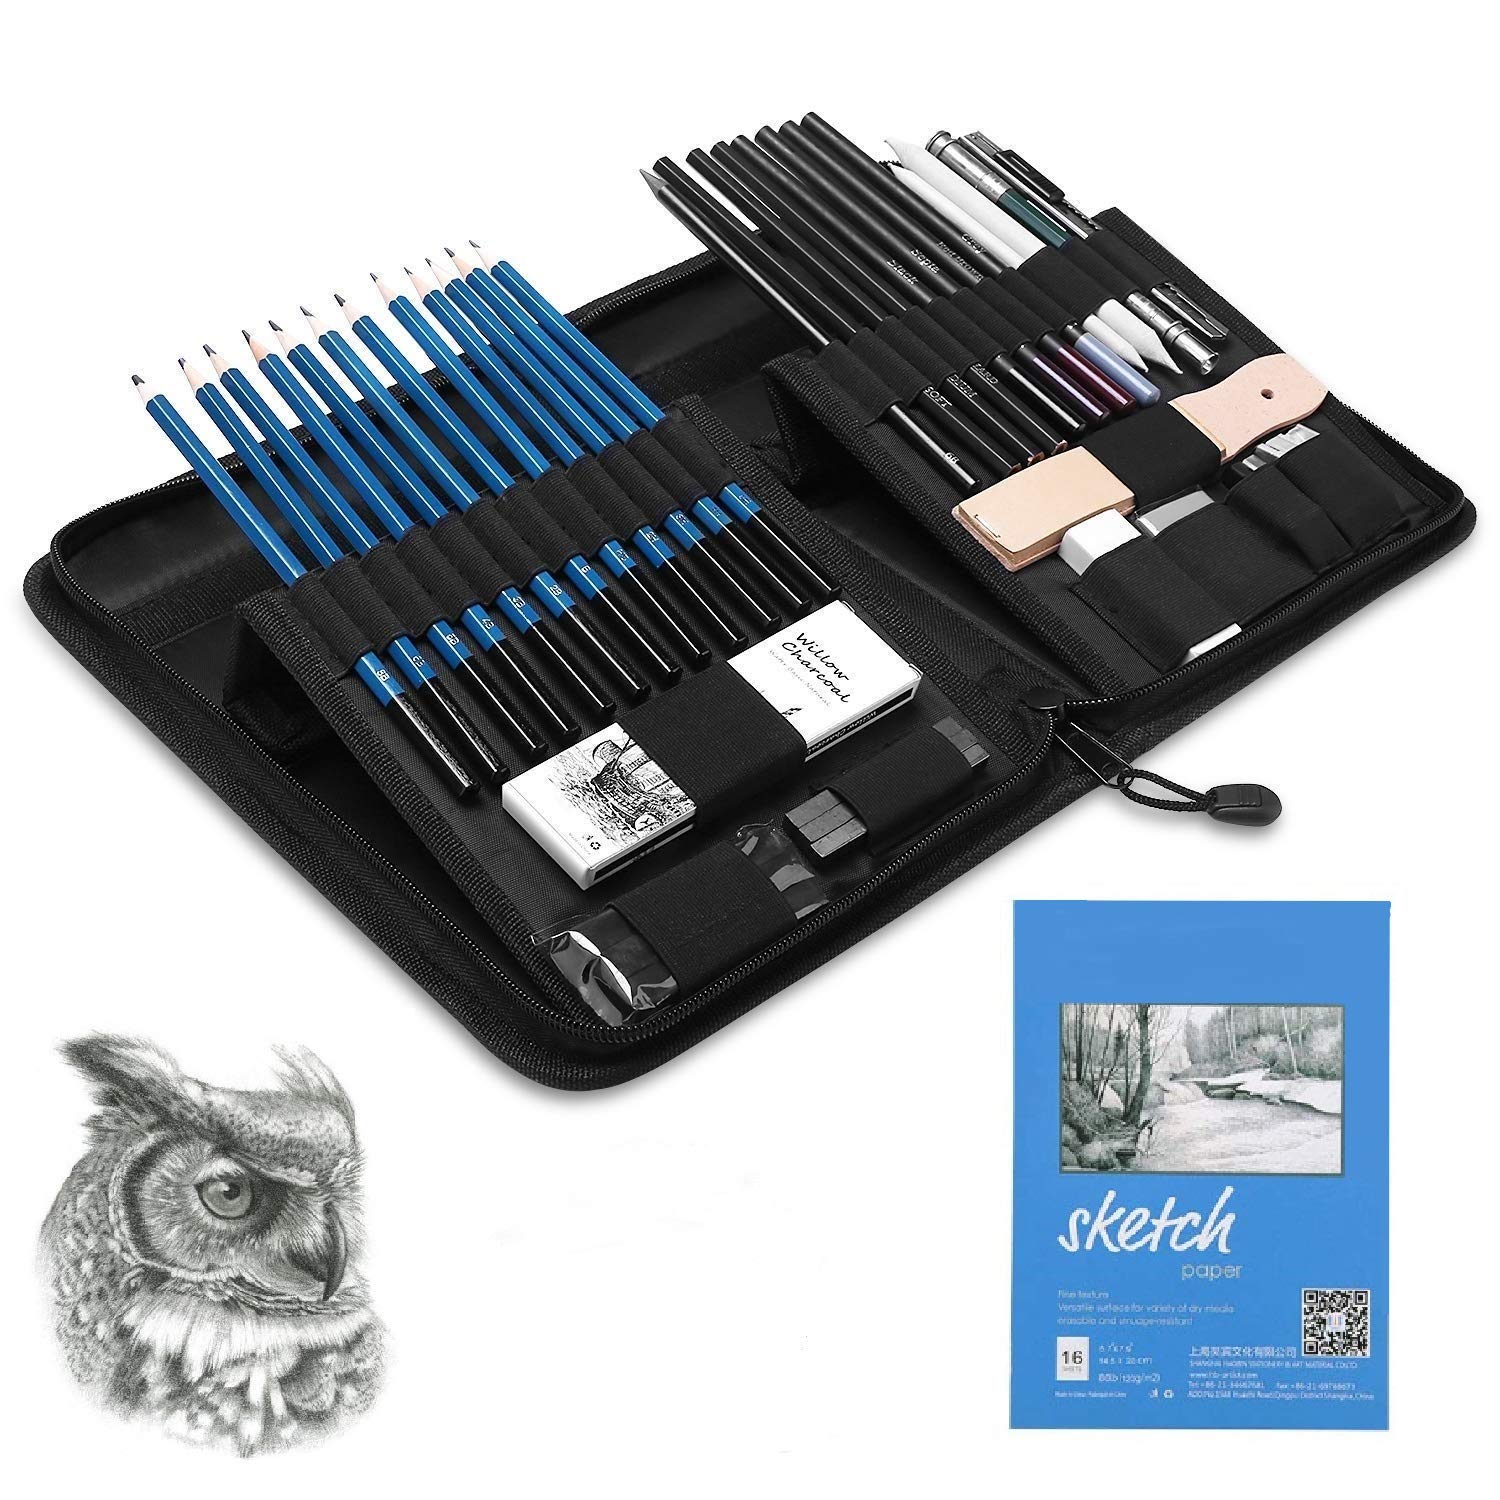 Graphite Pencils and Sketch Set by Decor Frontier - Drawing Kit Includes Charcoals, Pastels, Sharpener, Eraser, Craft Knife, Sandpaper Block and Carrying Case - Handy Pop-Up Stand for Easy Access